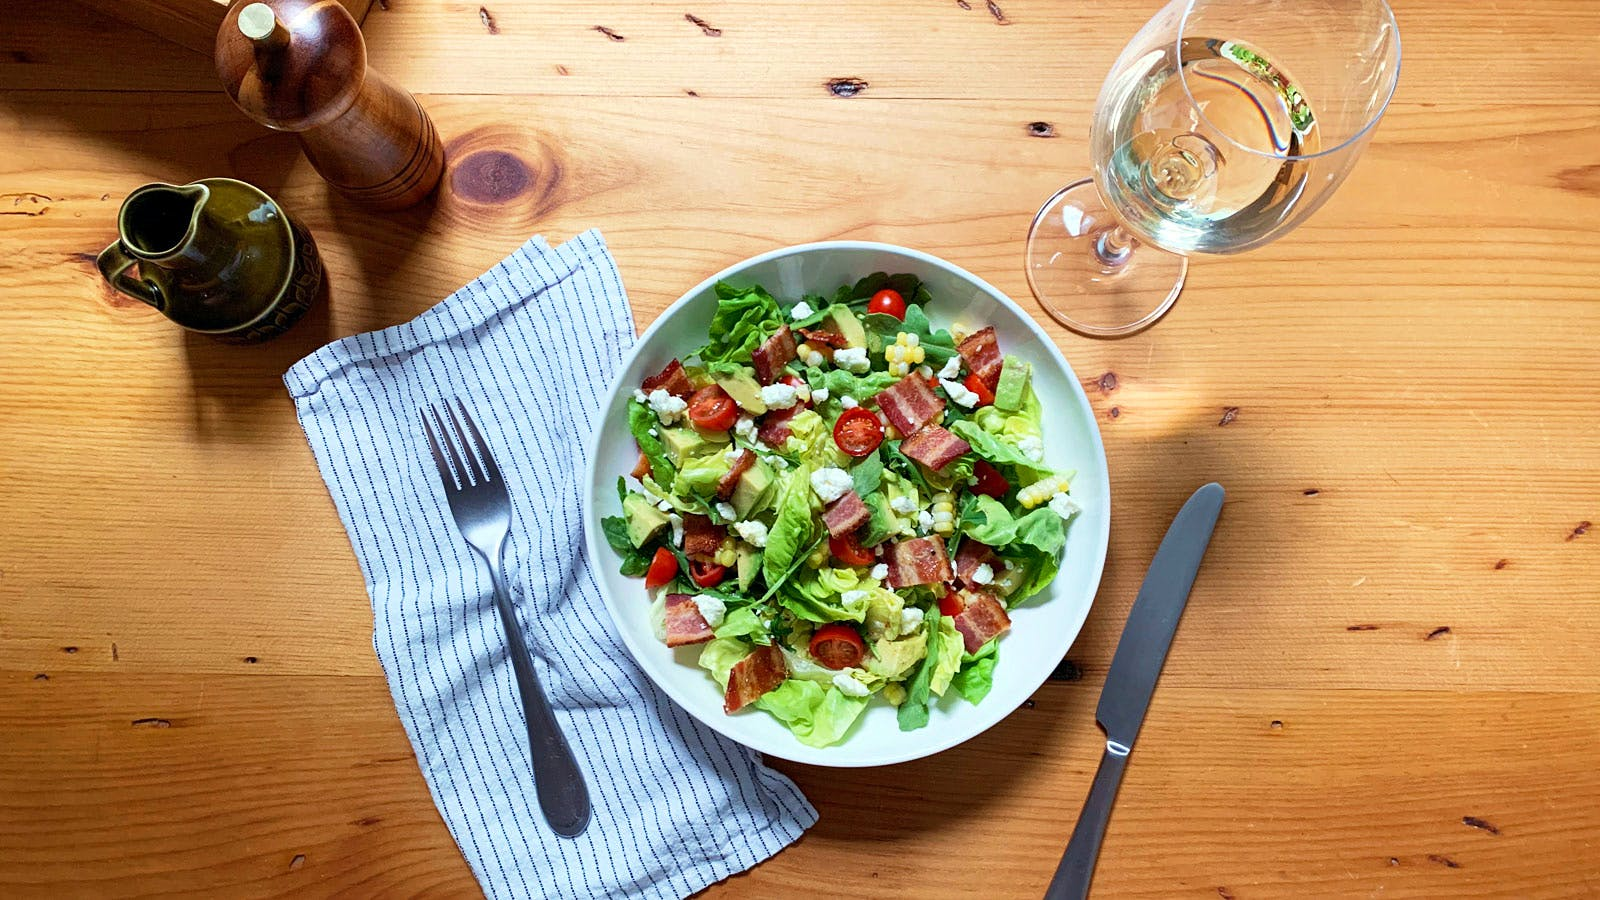 5 Favorite Recipes: Hearty, Main-Course Summer Salads